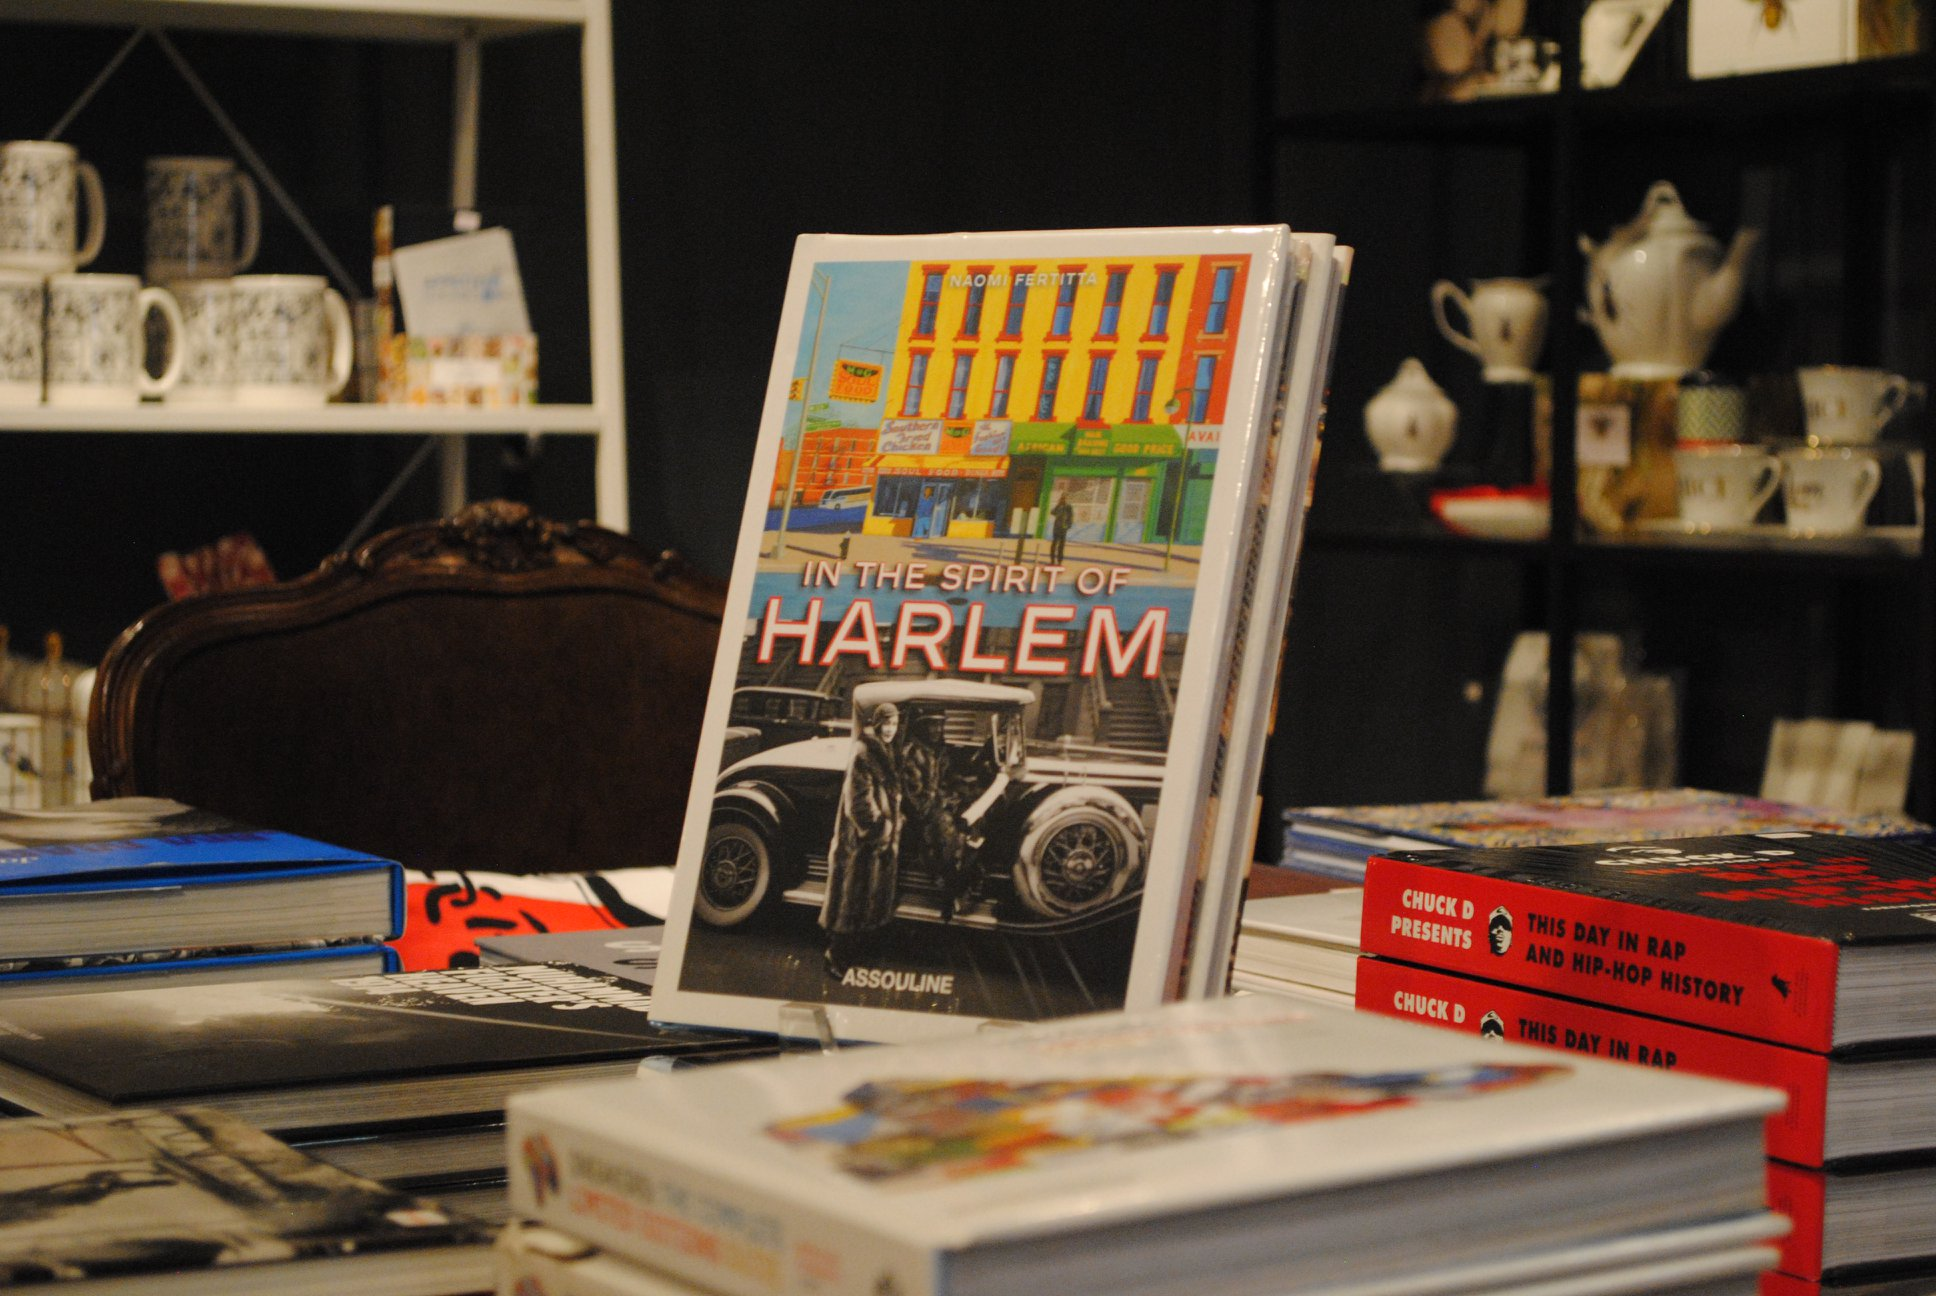 Que faire dans le quartier de Harlem, le blog de New York Off Road